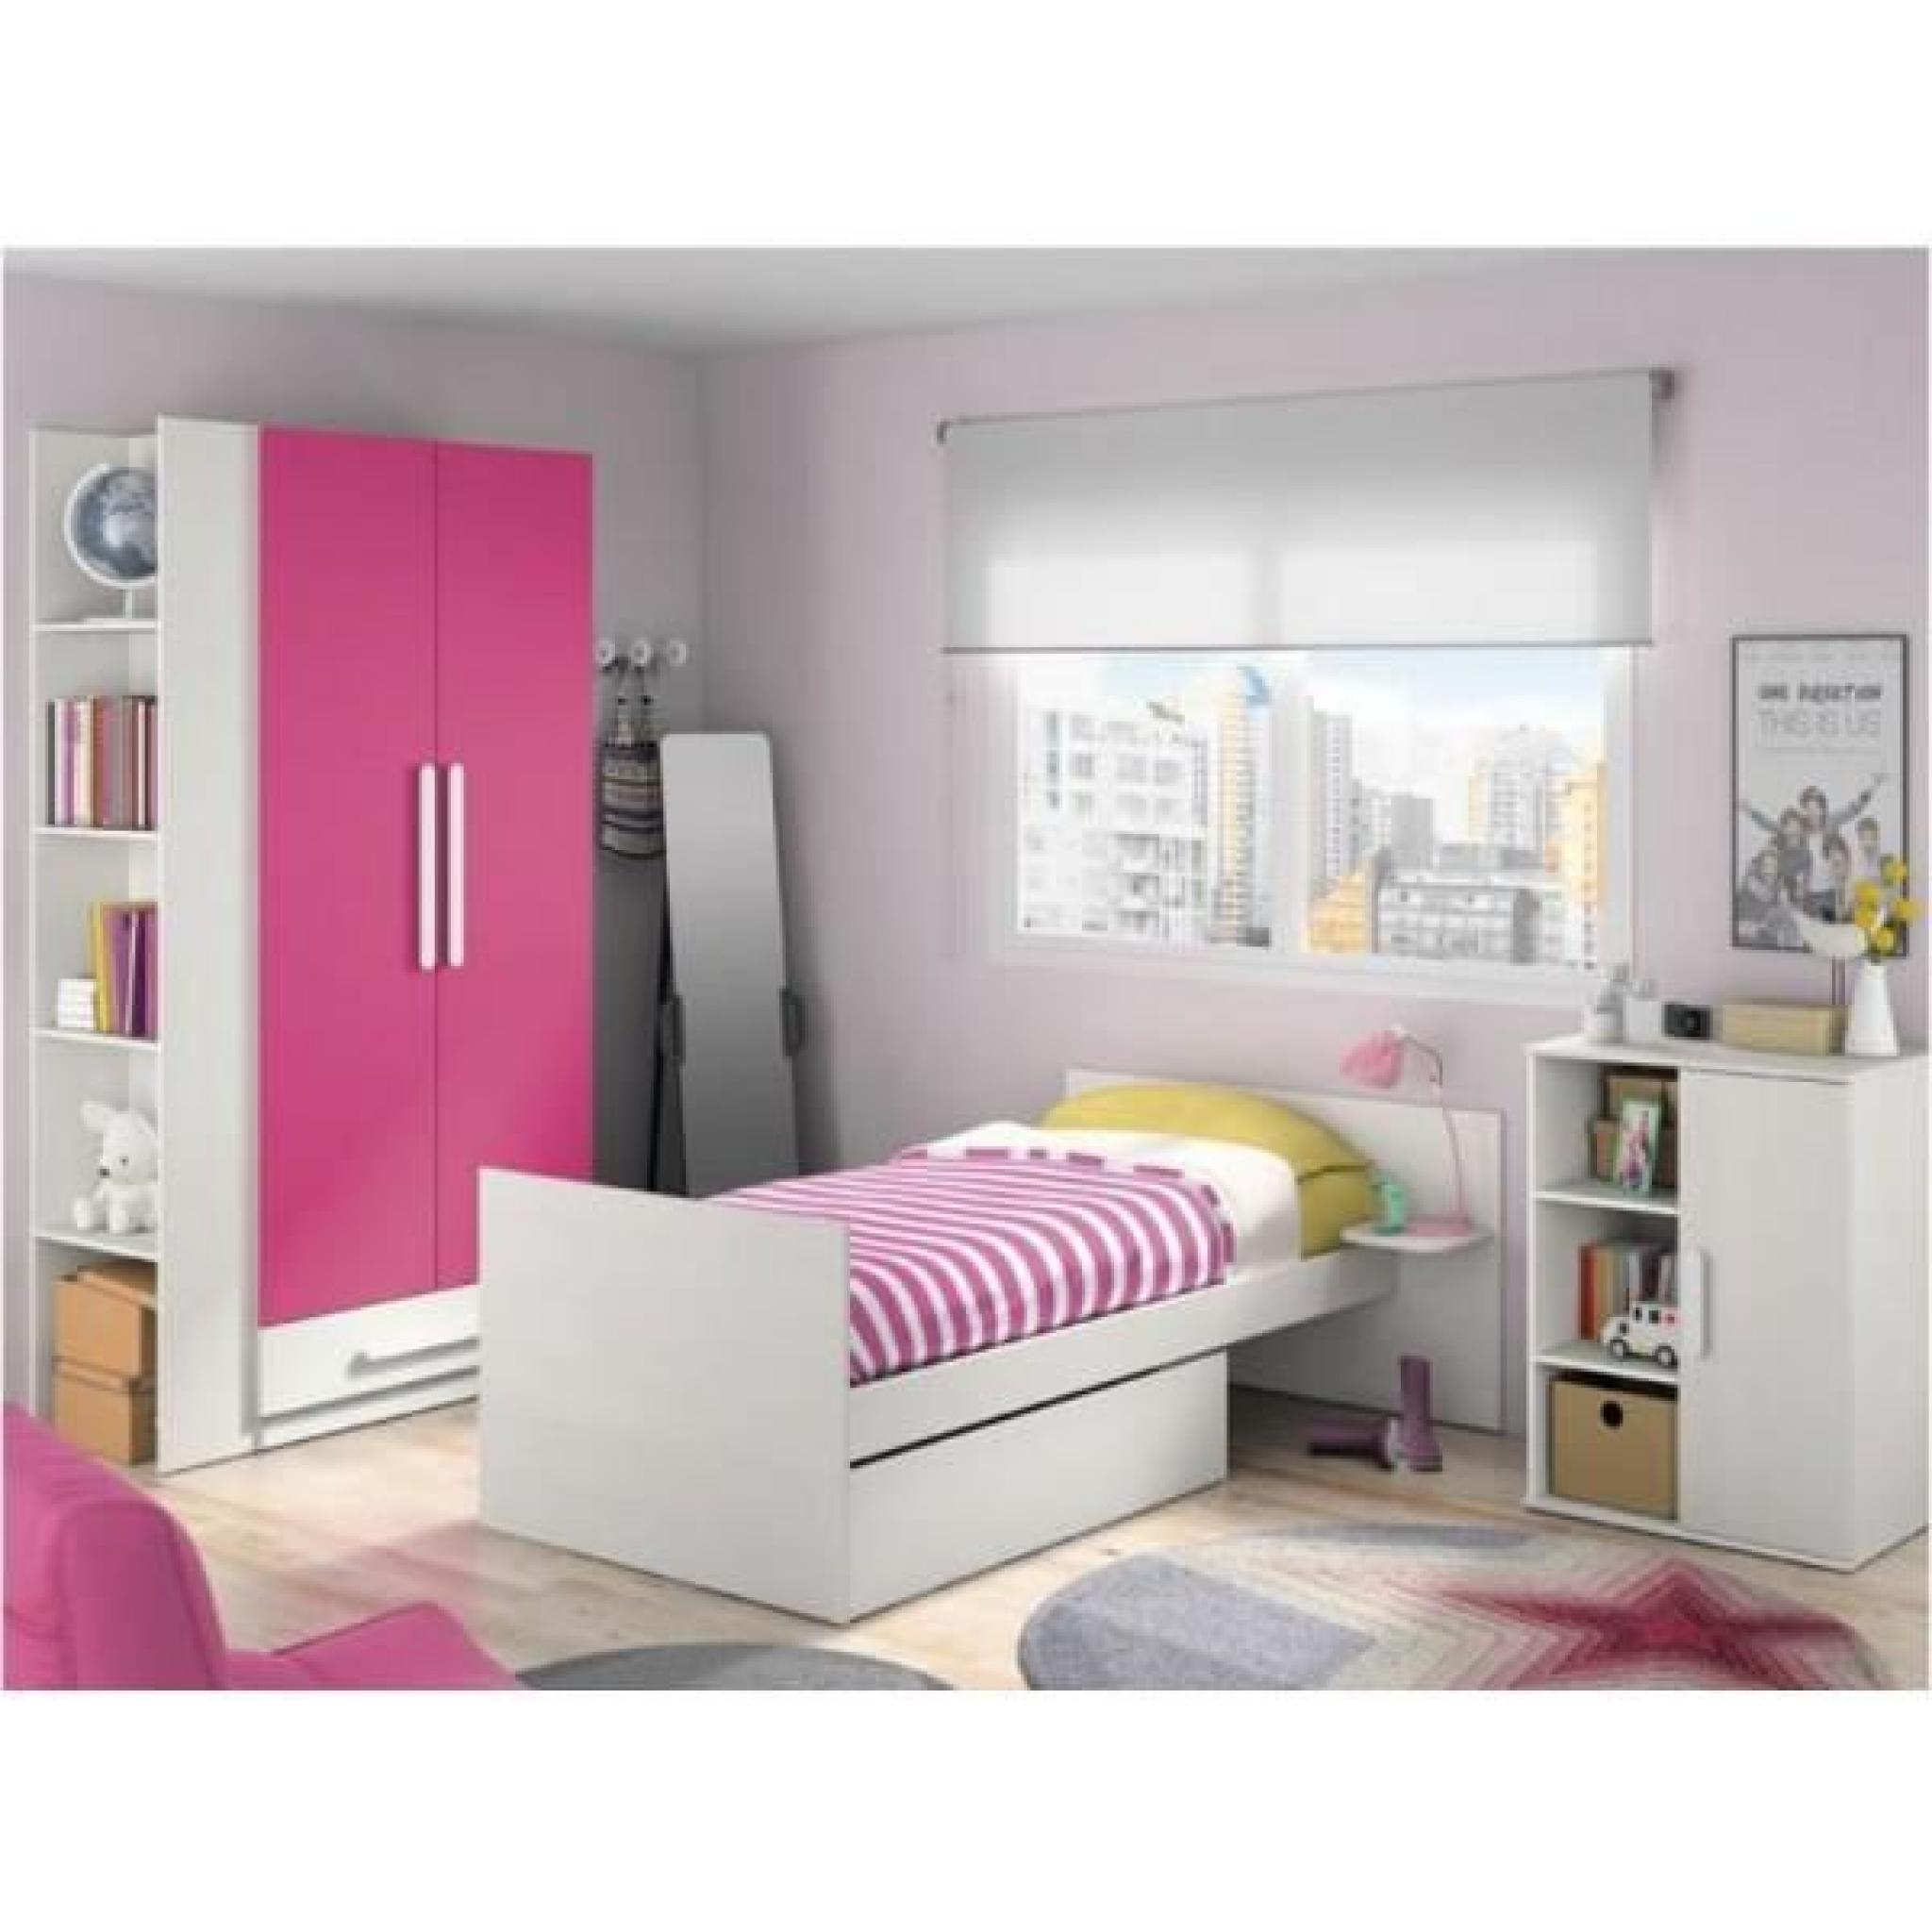 chambre compl te b b evolutive deco 302 achat vente. Black Bedroom Furniture Sets. Home Design Ideas